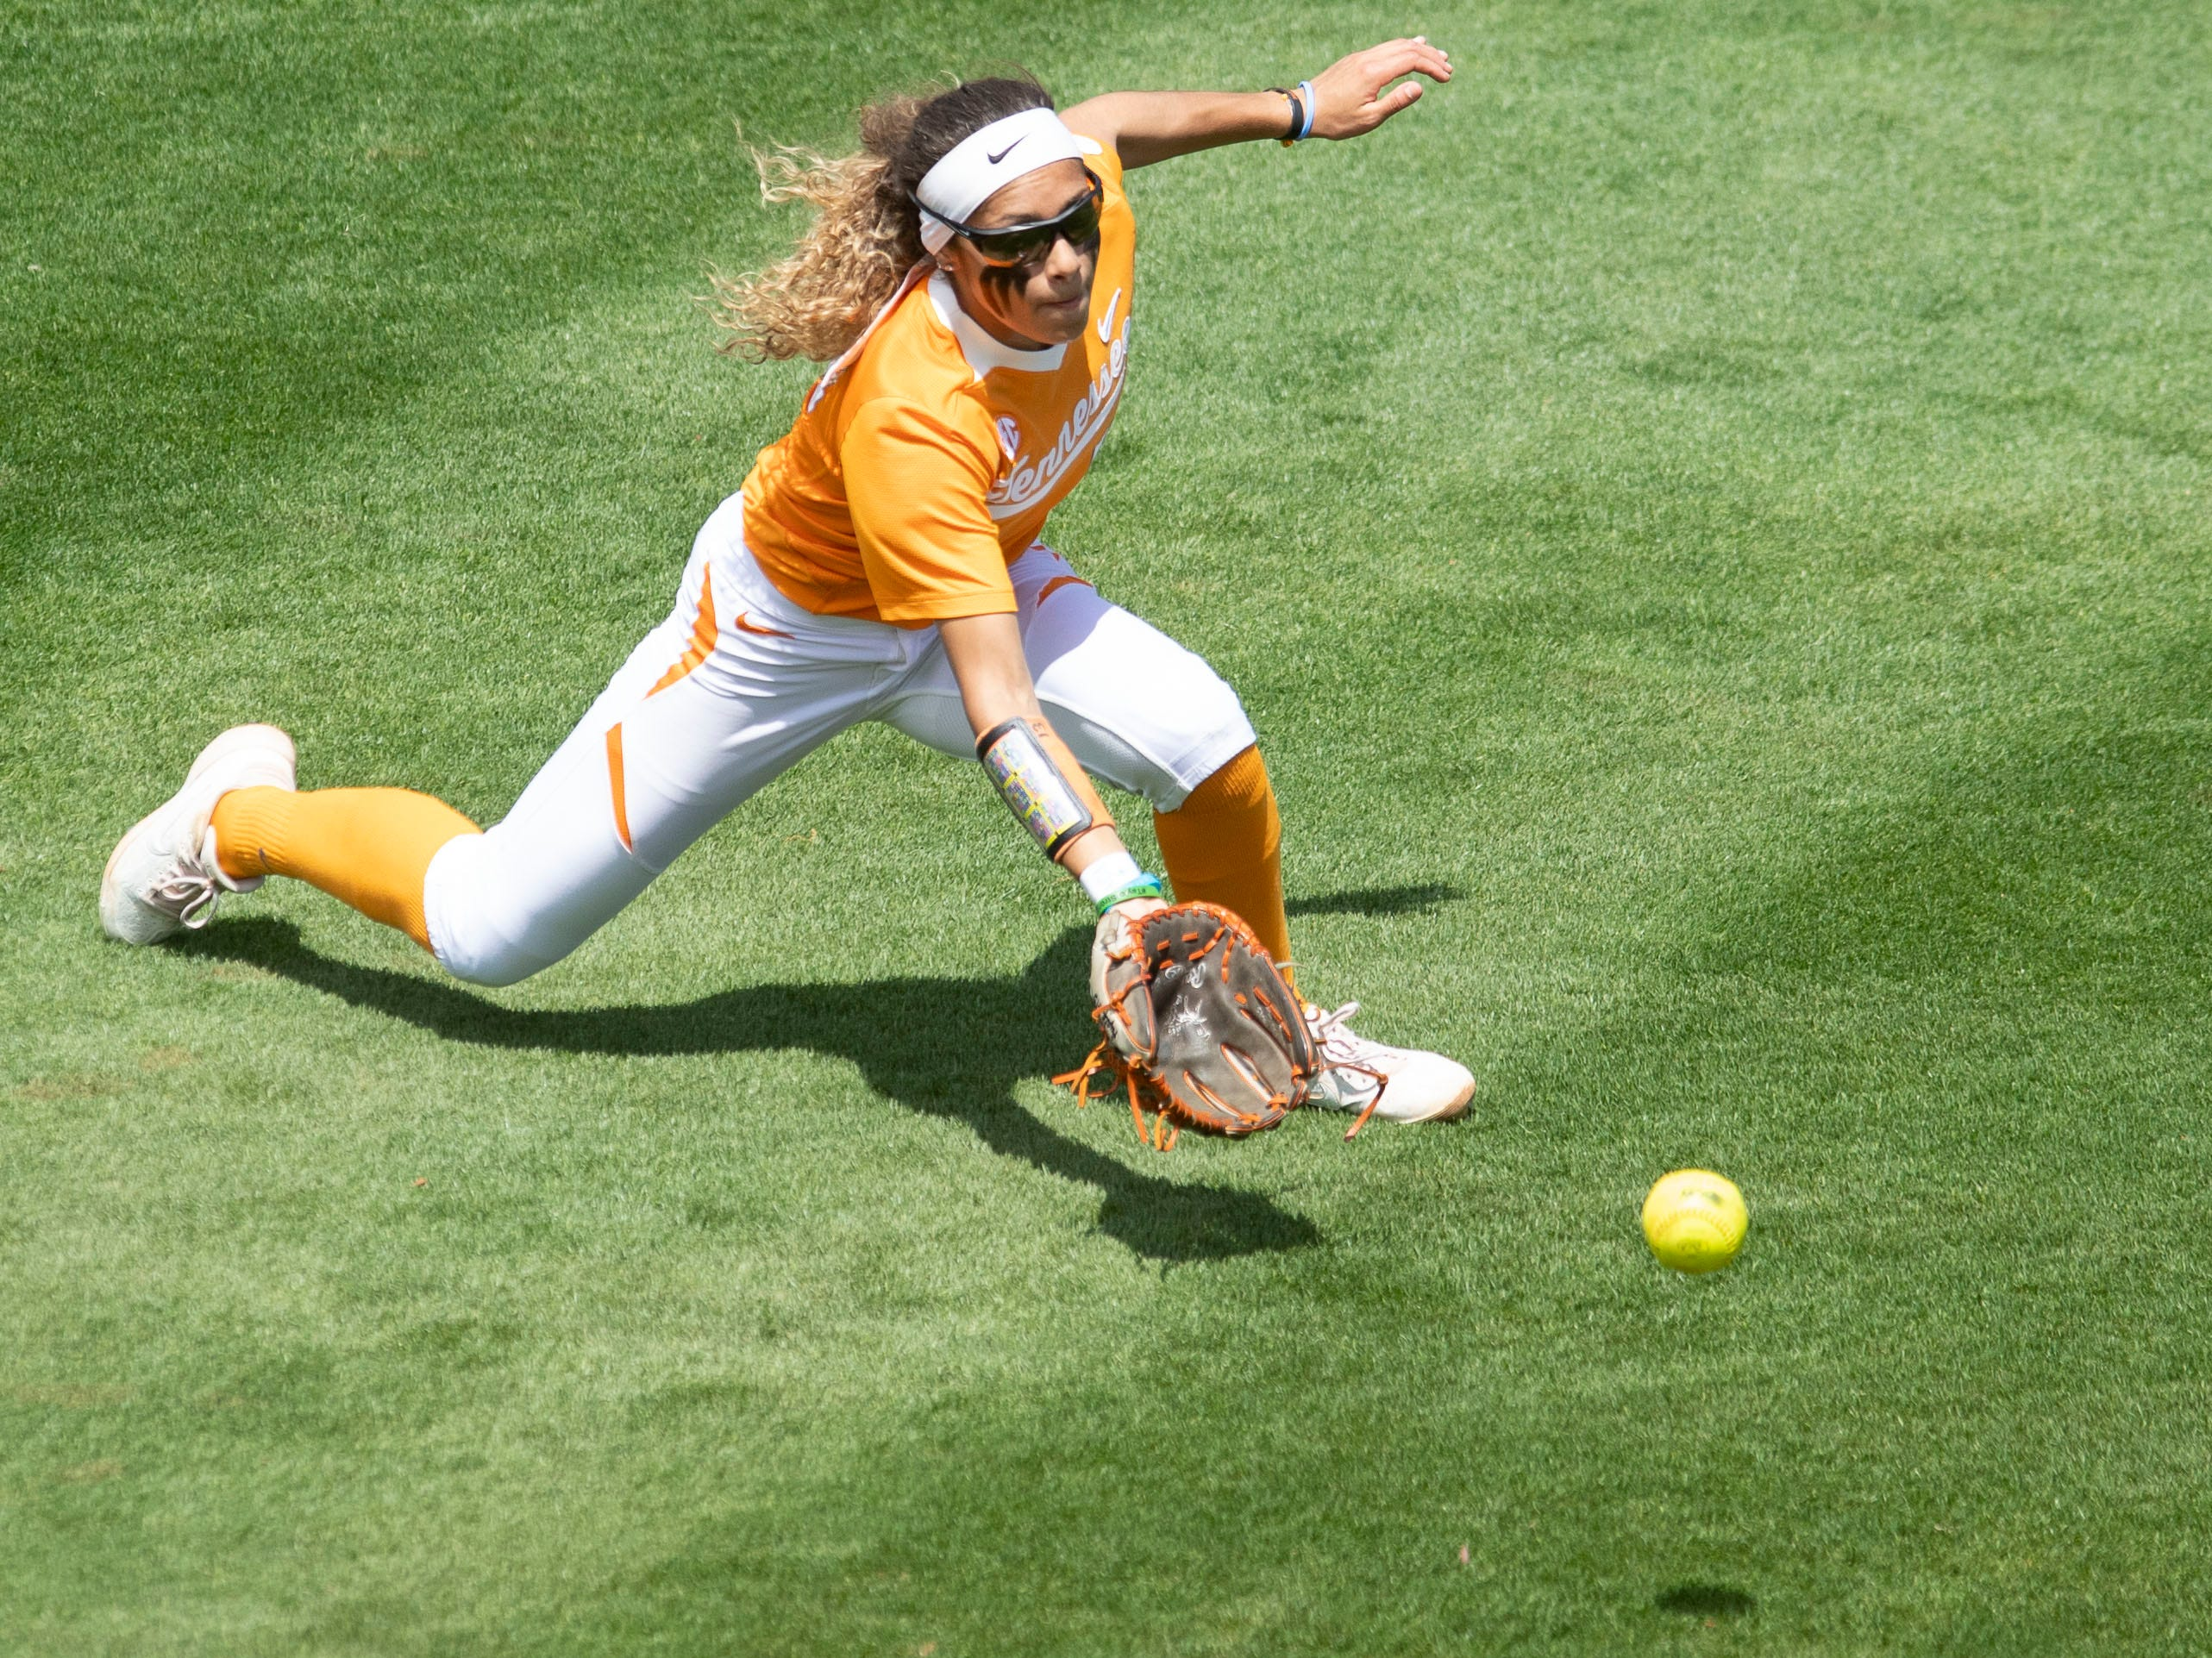 Tennessee's Amanda Ayala (13) runs towards a hit to left field in the game against Mississippi State at Sherri Parker Lee Stadium on Sunday, April 14, 2019.